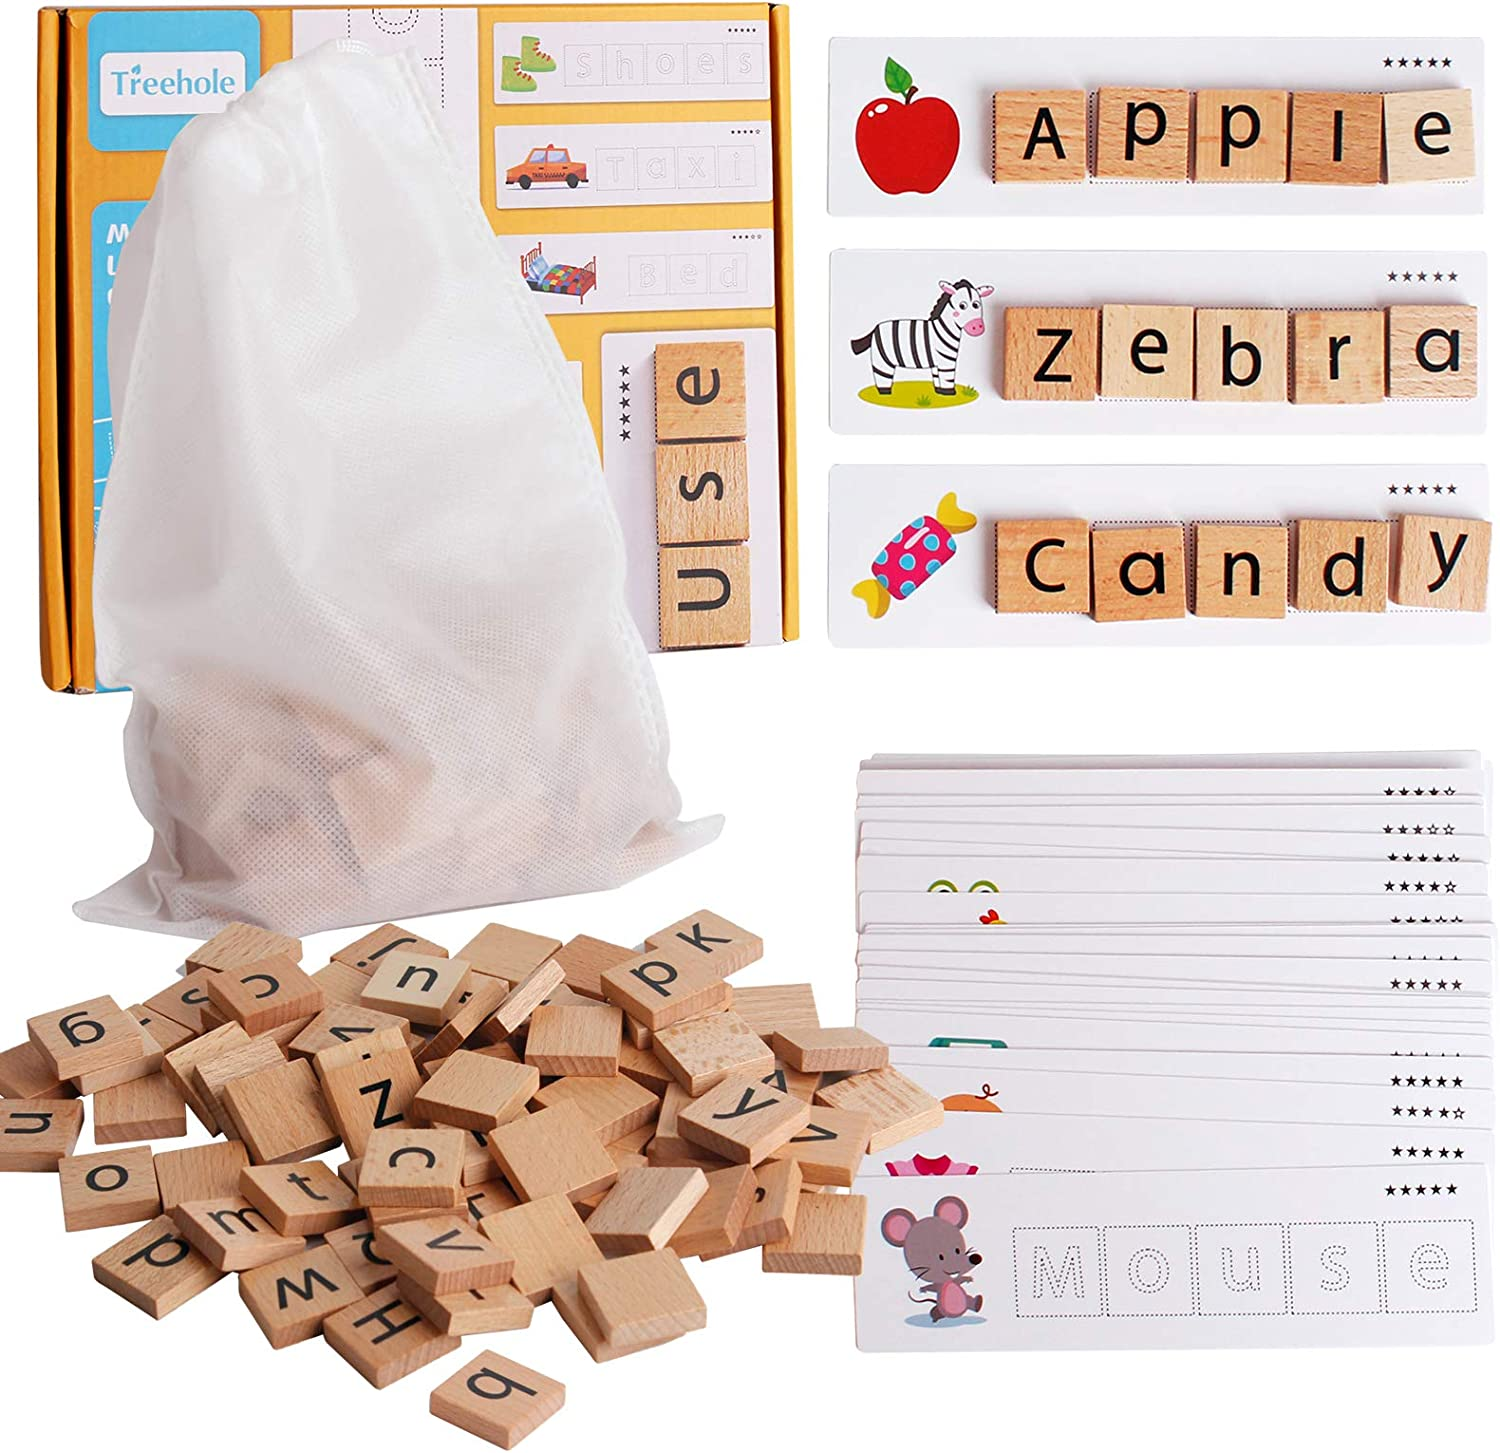 Wooden Words Spelling Matching Toy Flash Cards Educational Game Set ABC Alphabet Letters Shape Puzzle Educational Developmental Tools Montessori STEM Gift for Kids Toddlers 3 Years Old